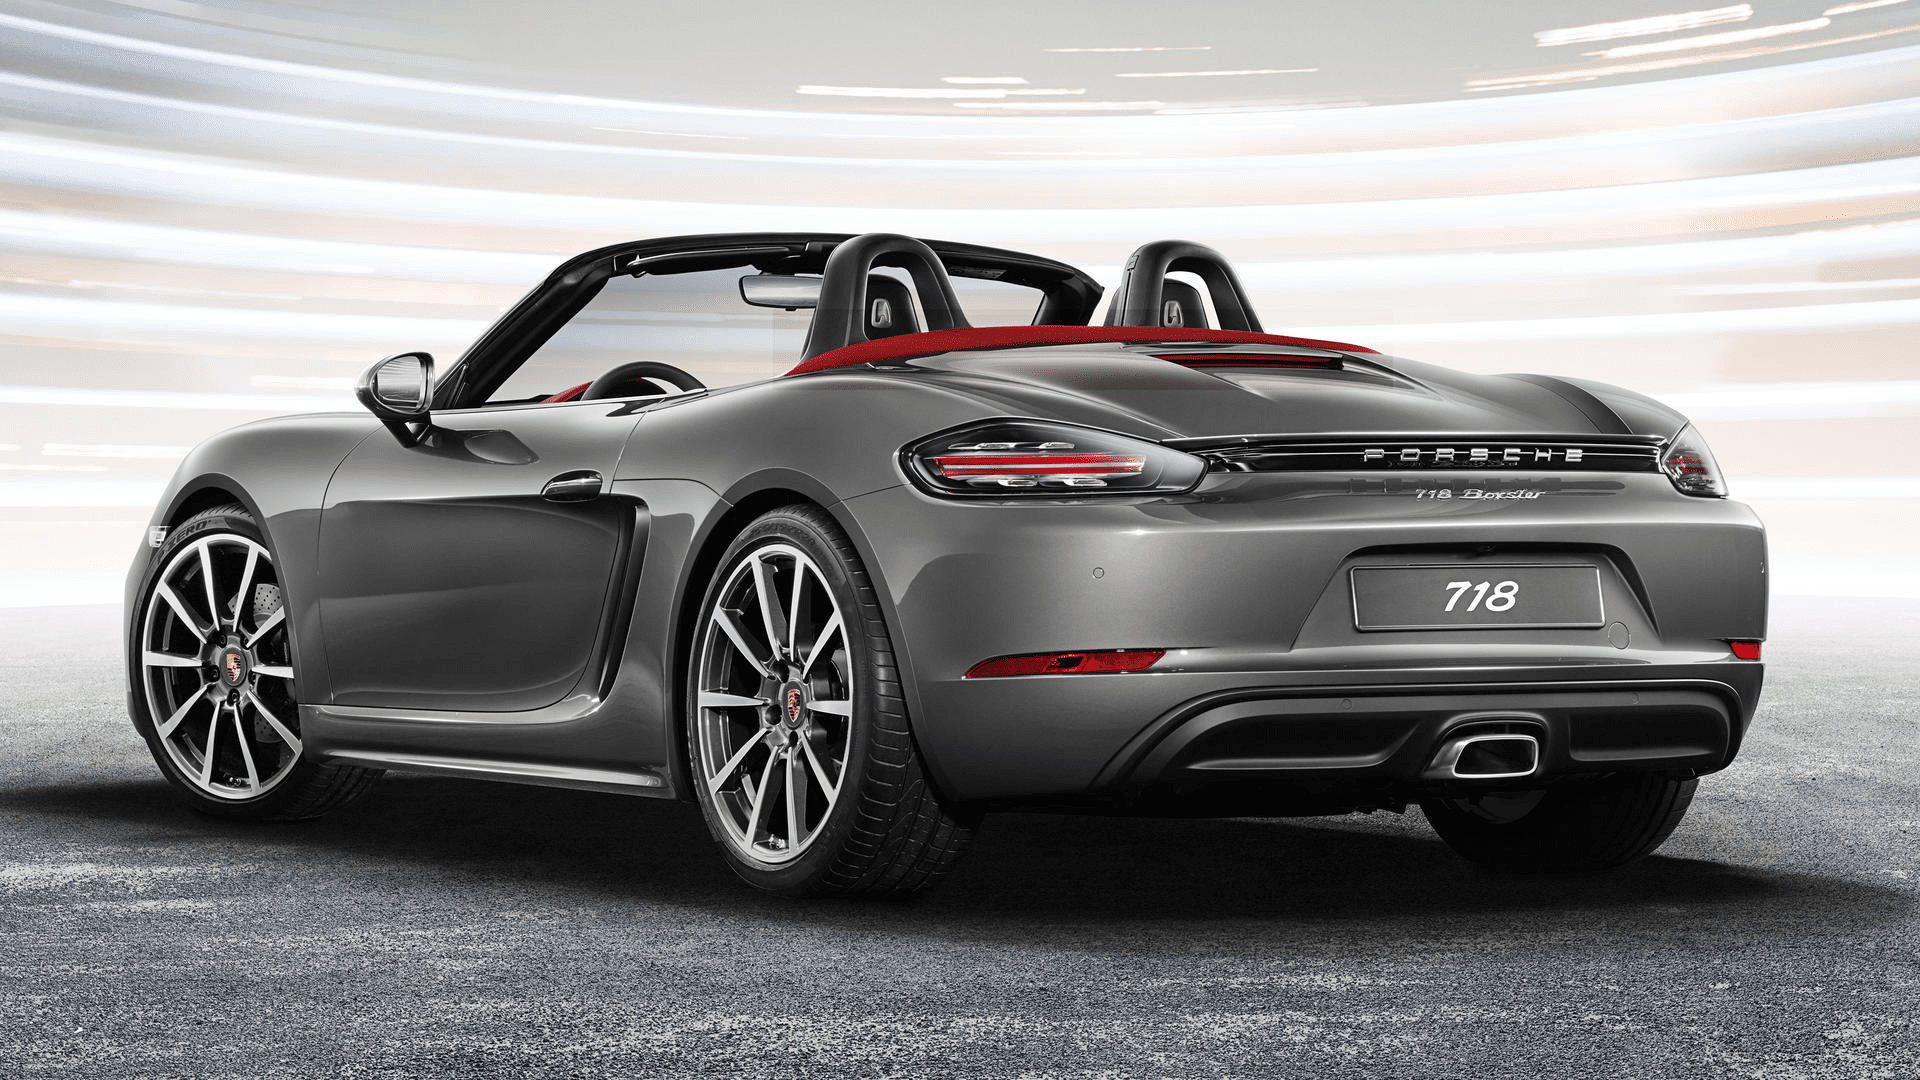 Porsche 718 Boxster Features